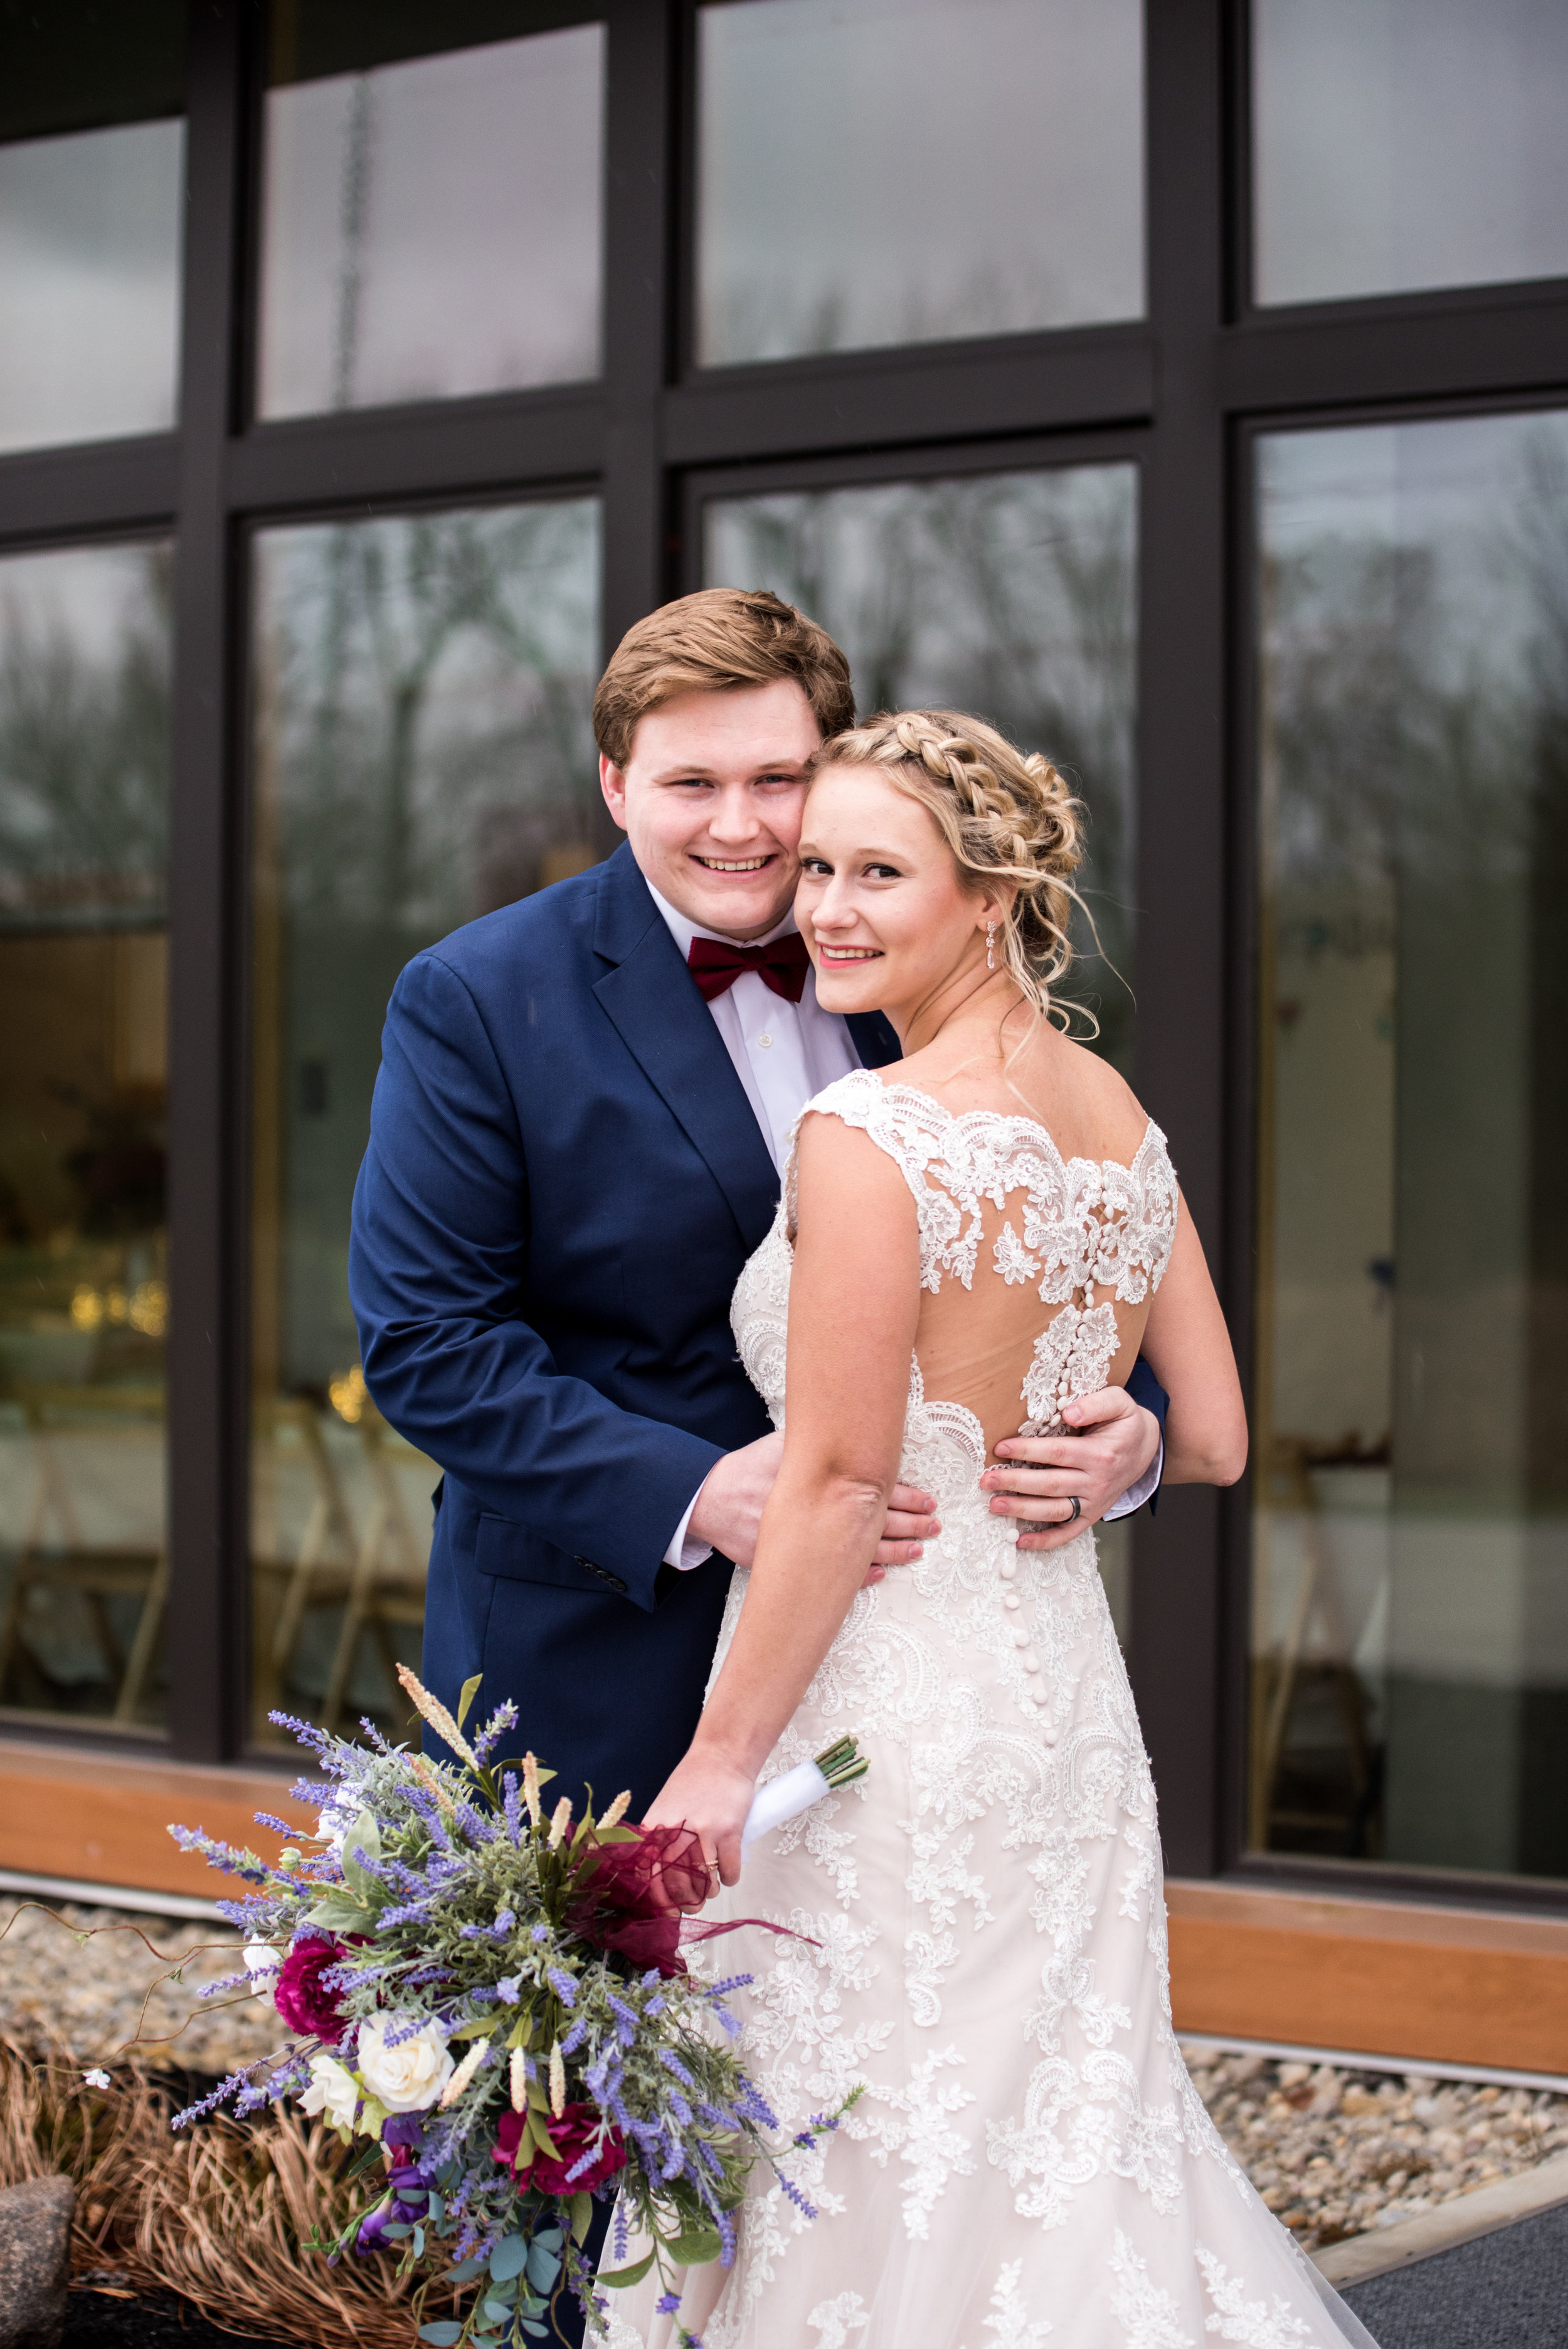 leah and devin (1 of 1)-2.jpg